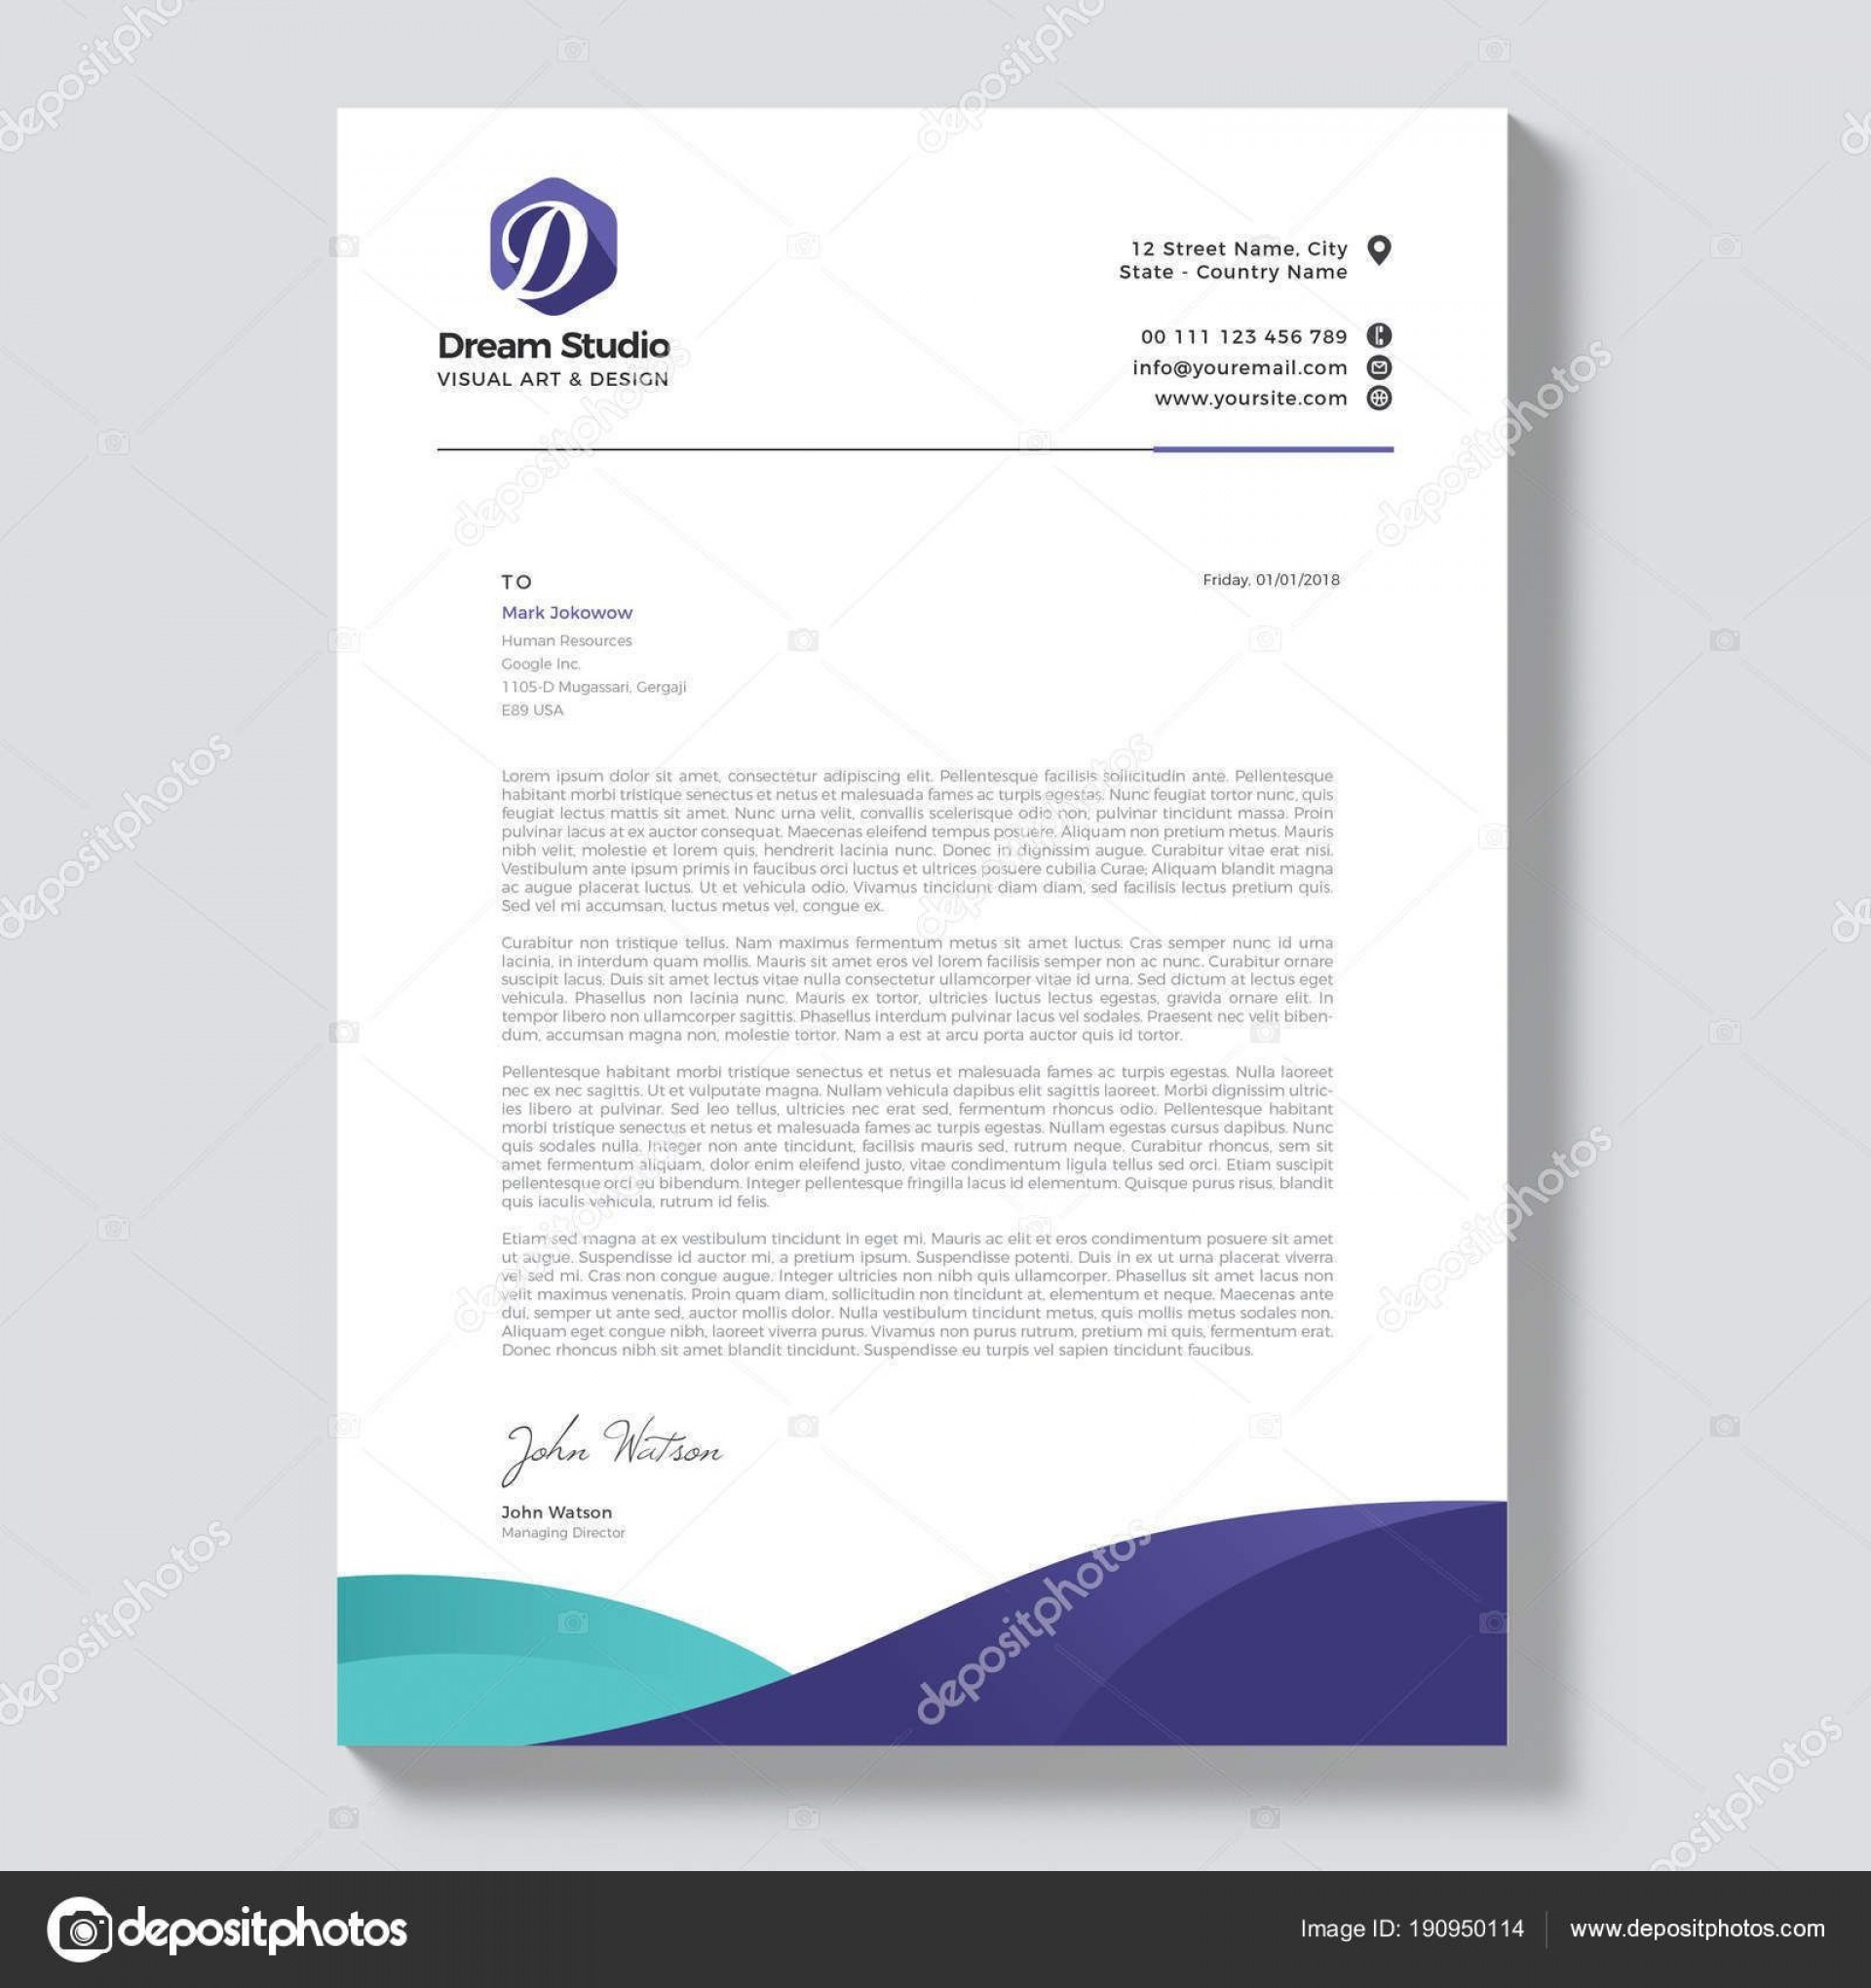 003 Beautiful Letterhead Sample Free Download  Construction Company Template1920